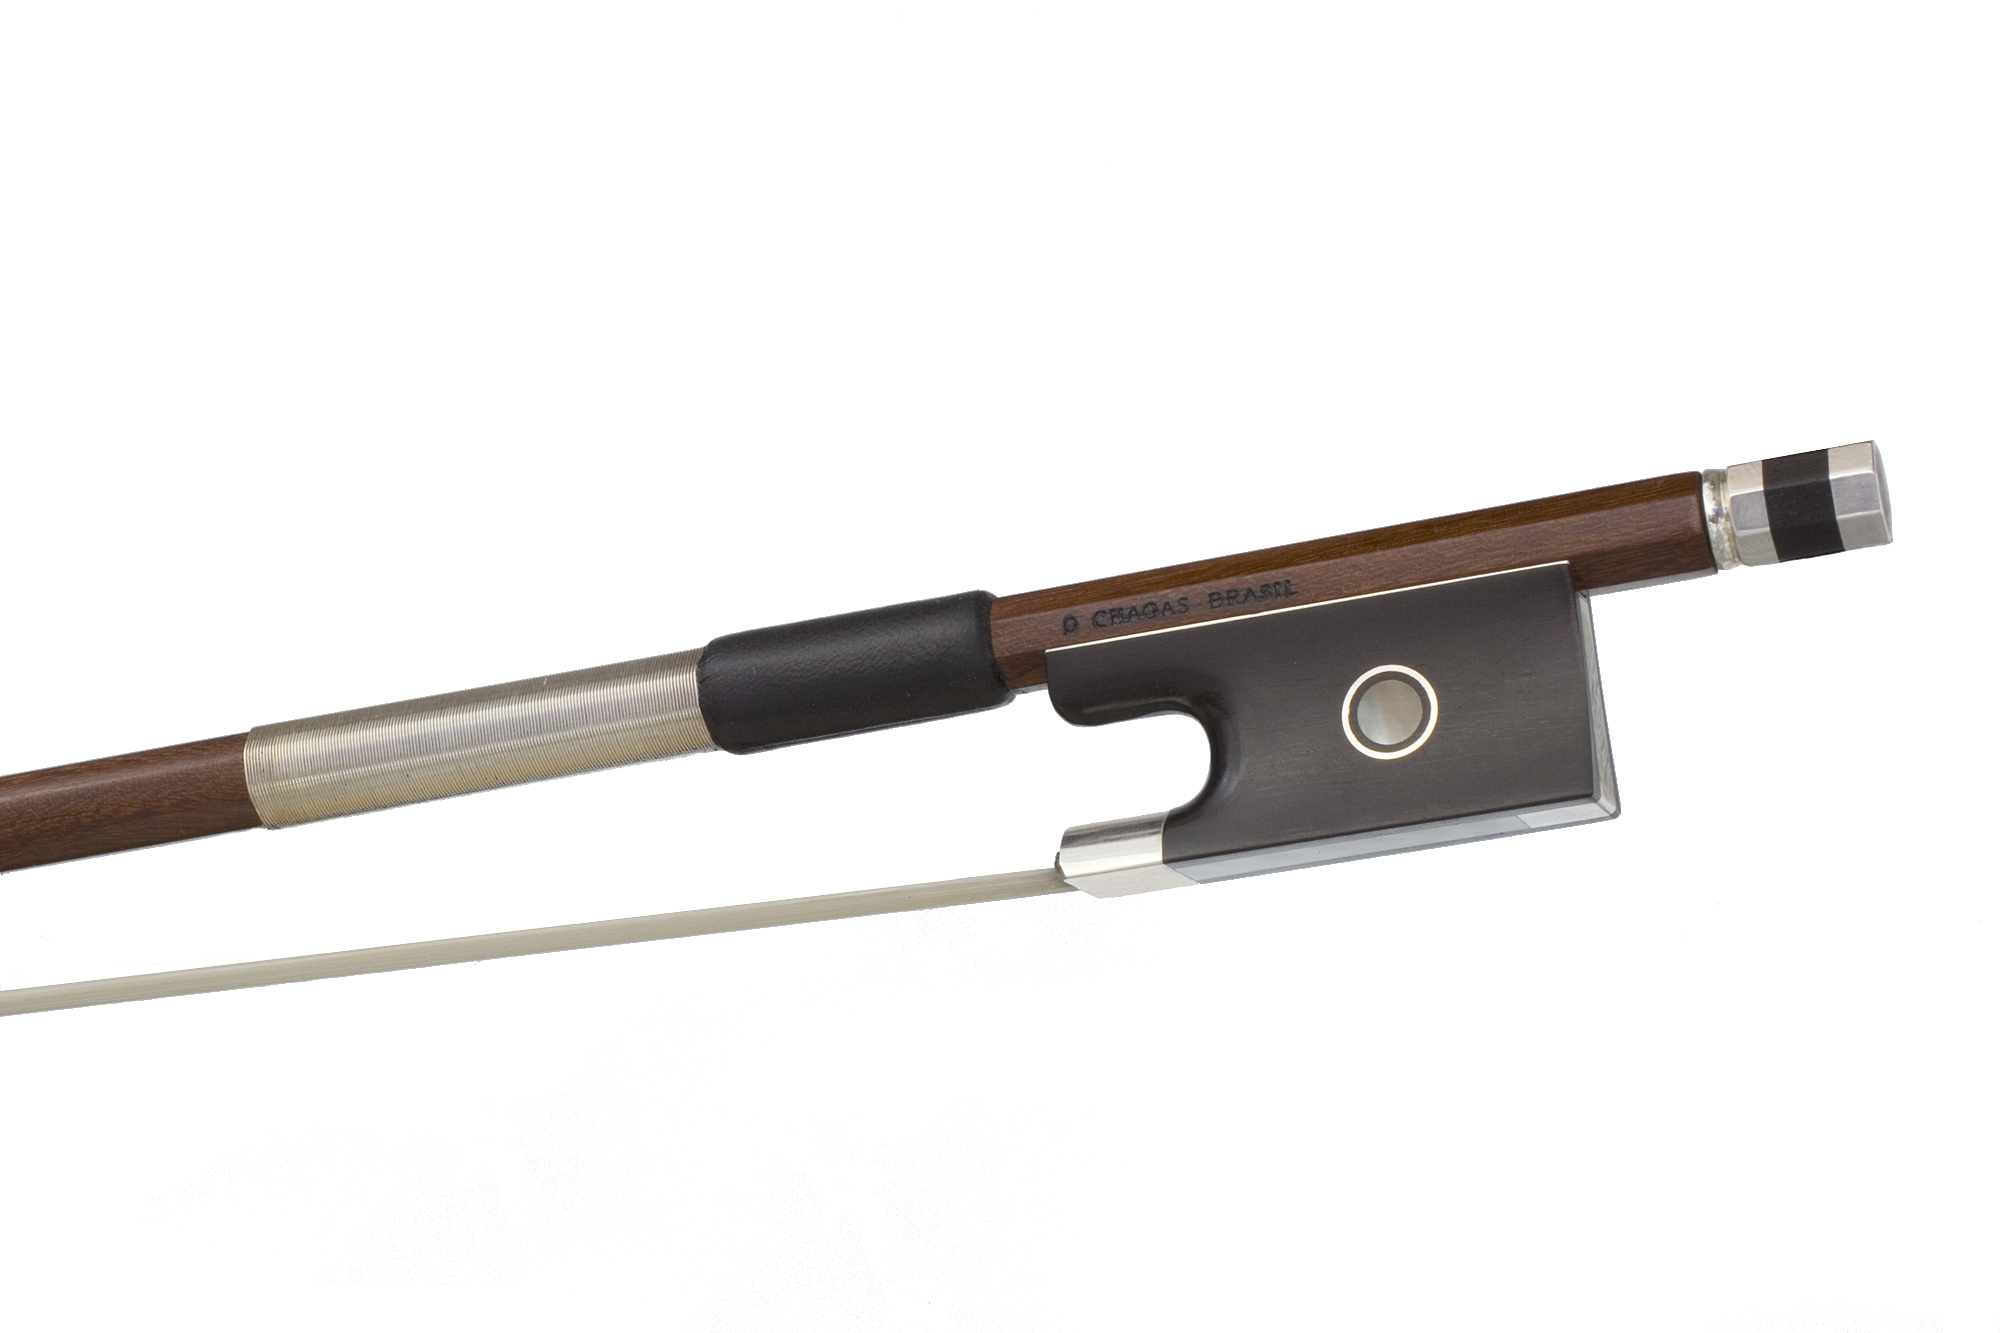 silver mounted violin bow by d chagas brazil. Black Bedroom Furniture Sets. Home Design Ideas